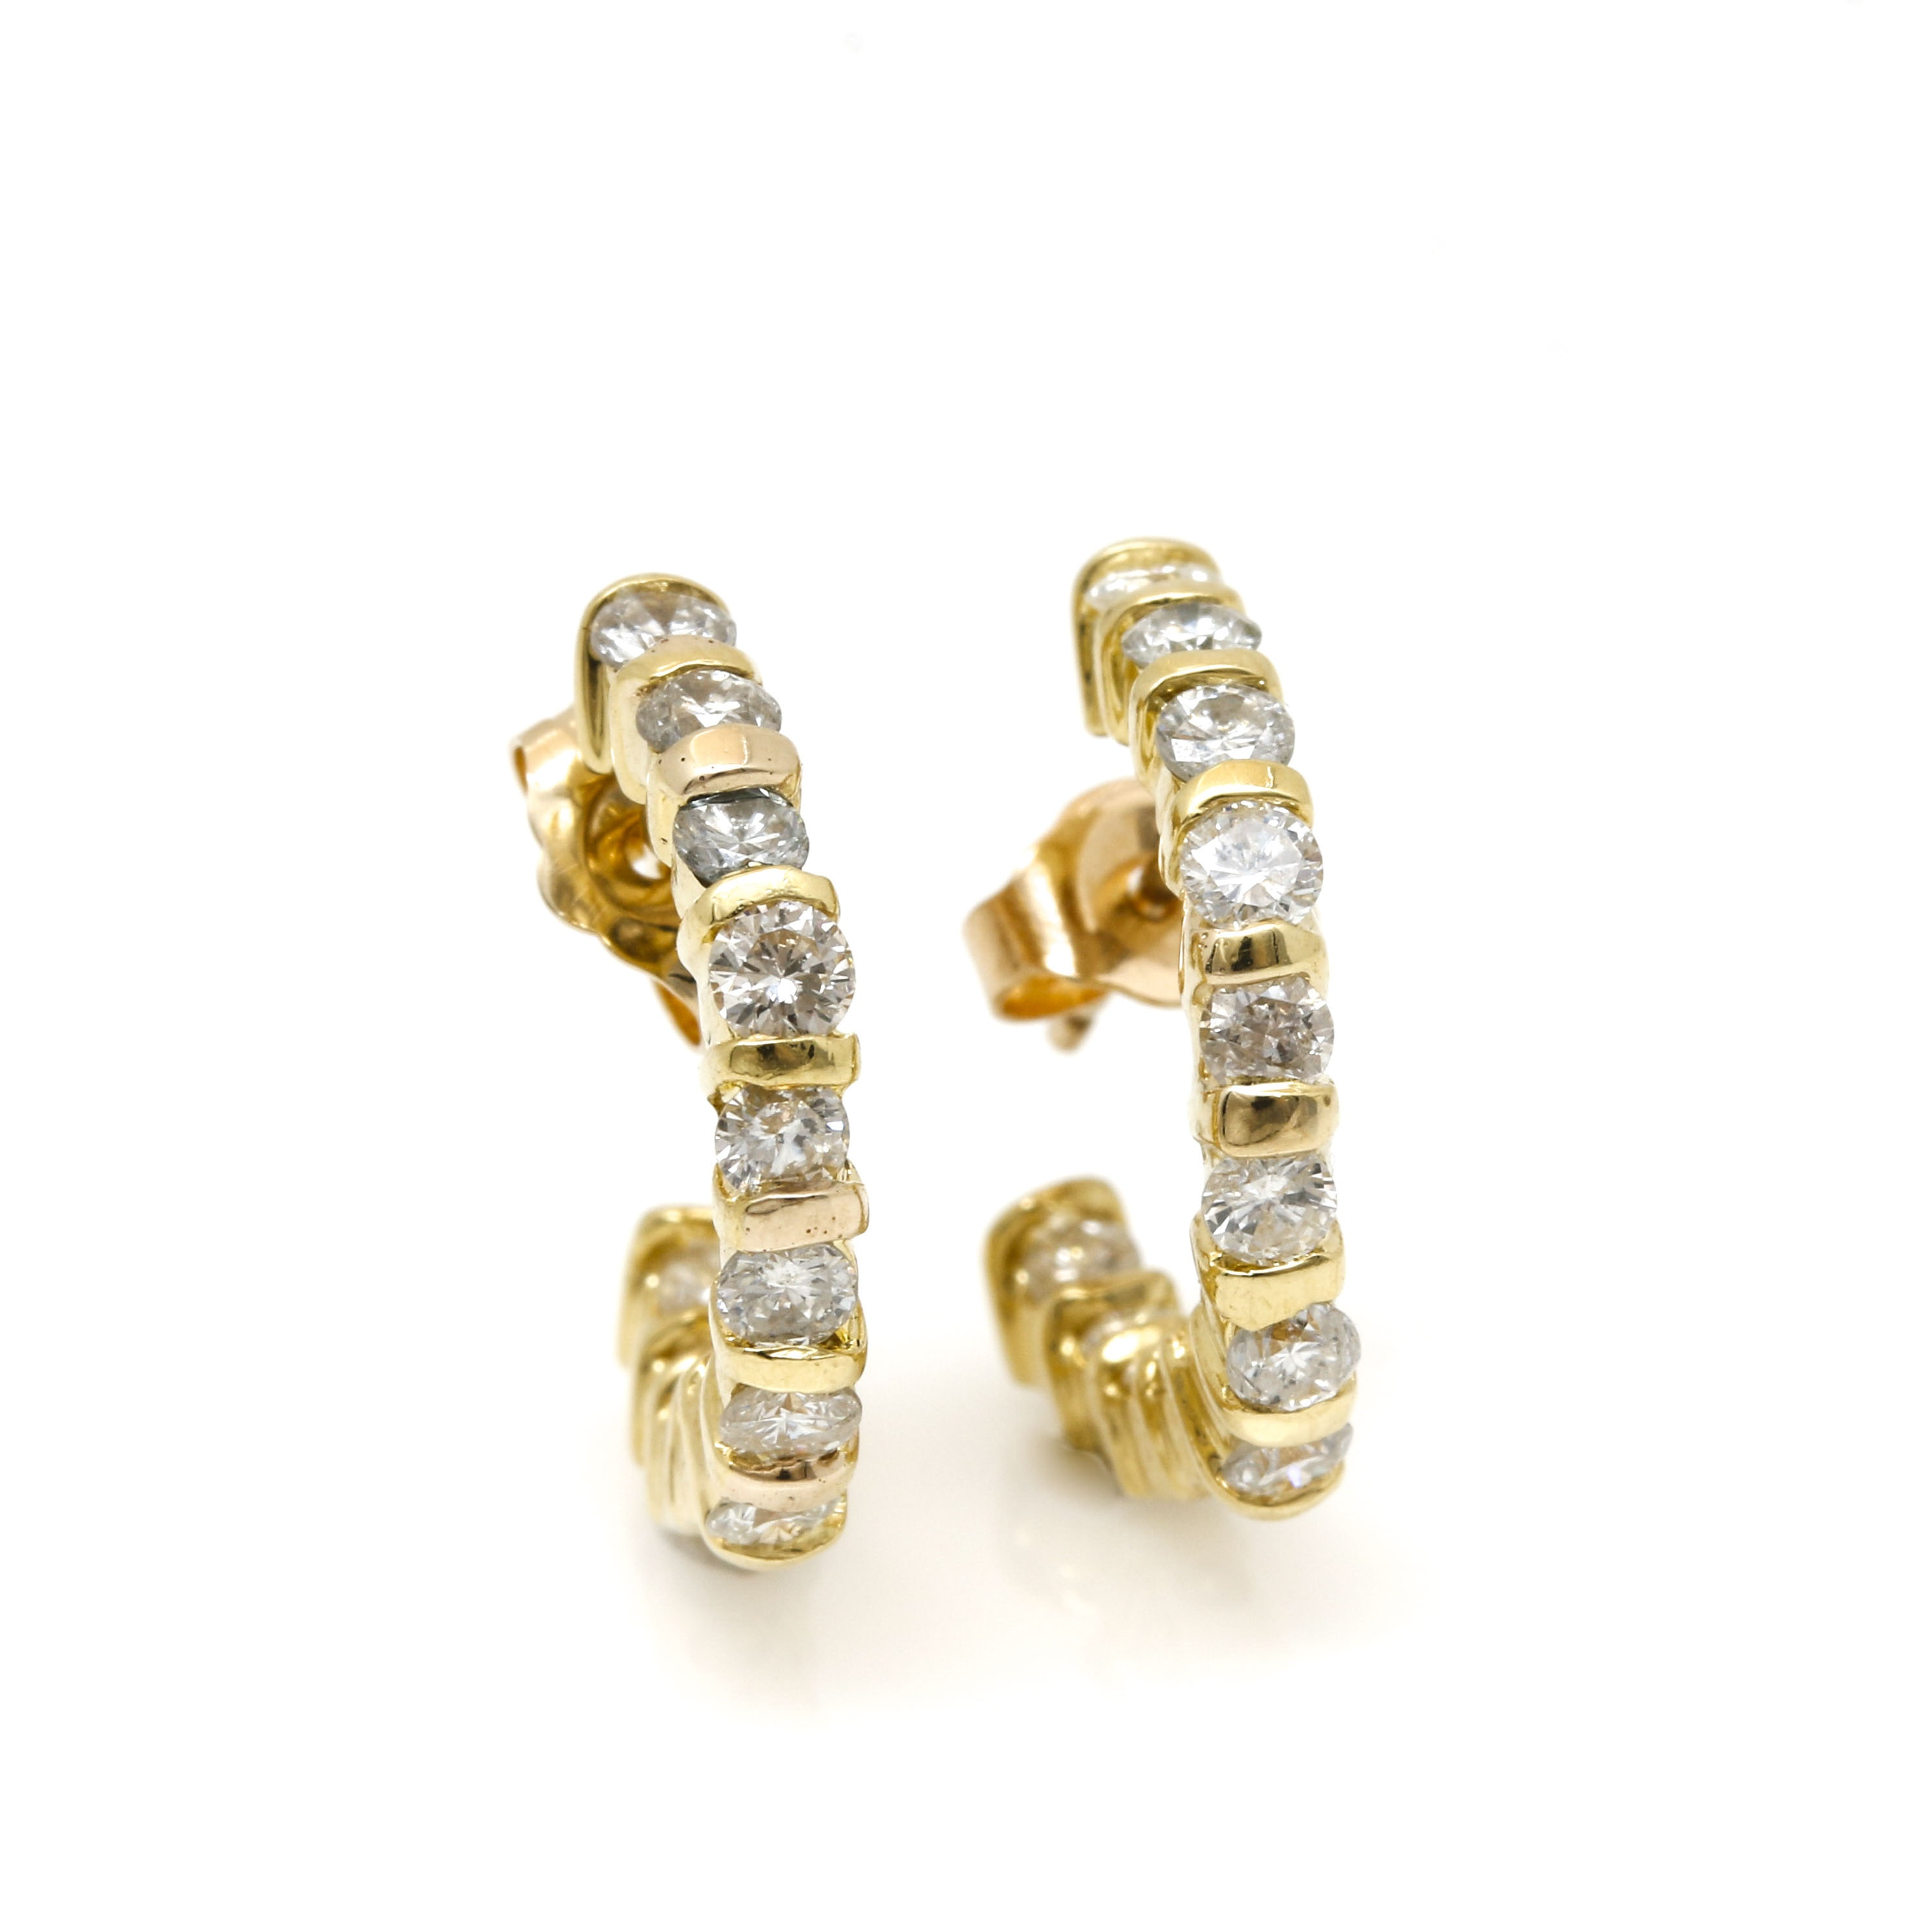 18K Yellow Gold 1.08 CTW Diamond Earrings